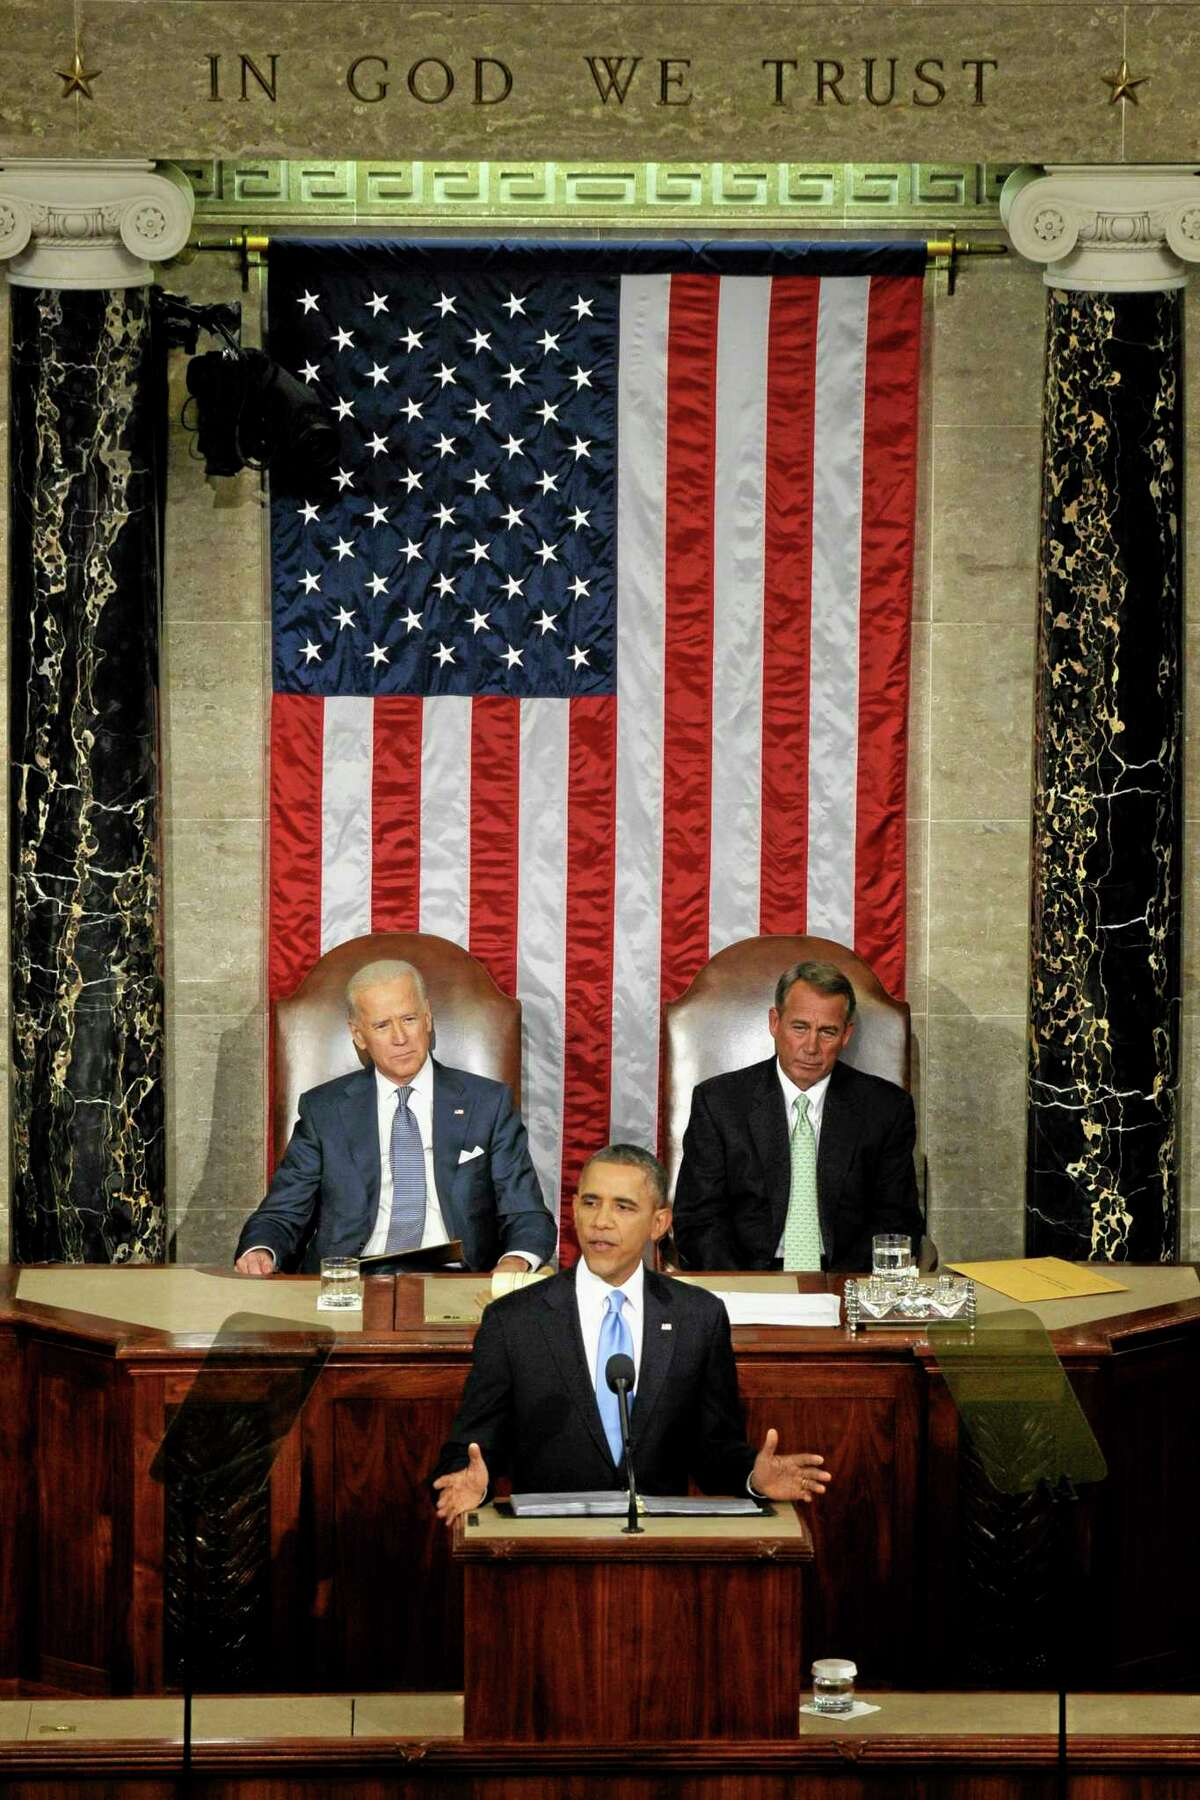 President Barack Obama delivers his State of the Union address on Capitol Hill in Washington, Tuesday Jan. 28, 2014. (AP Photo/Susan Walsh)